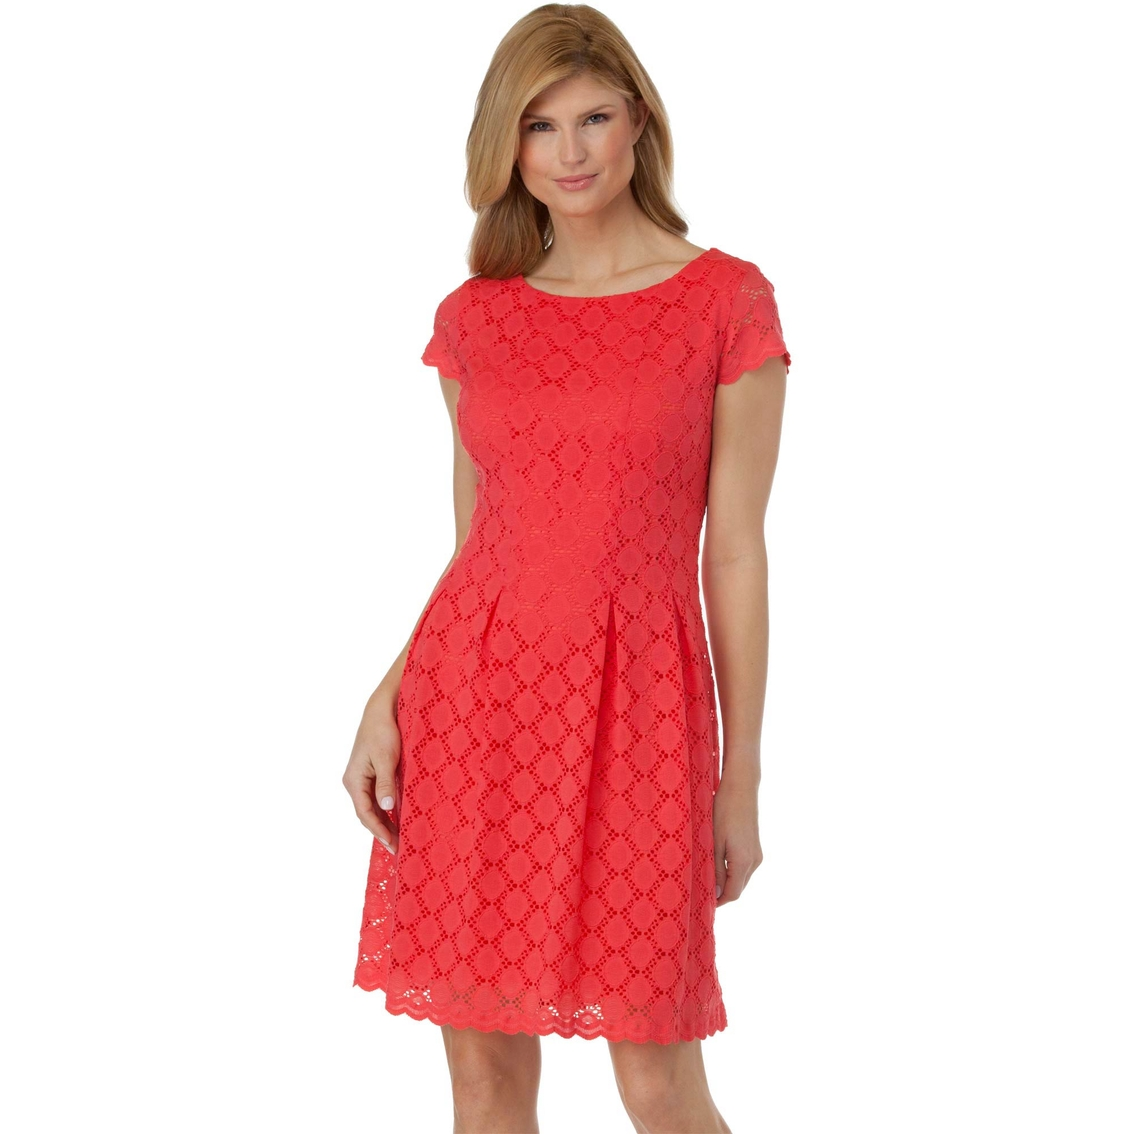 Ronni Nicole Lace Fit And Flare Dress Dresses Apparel